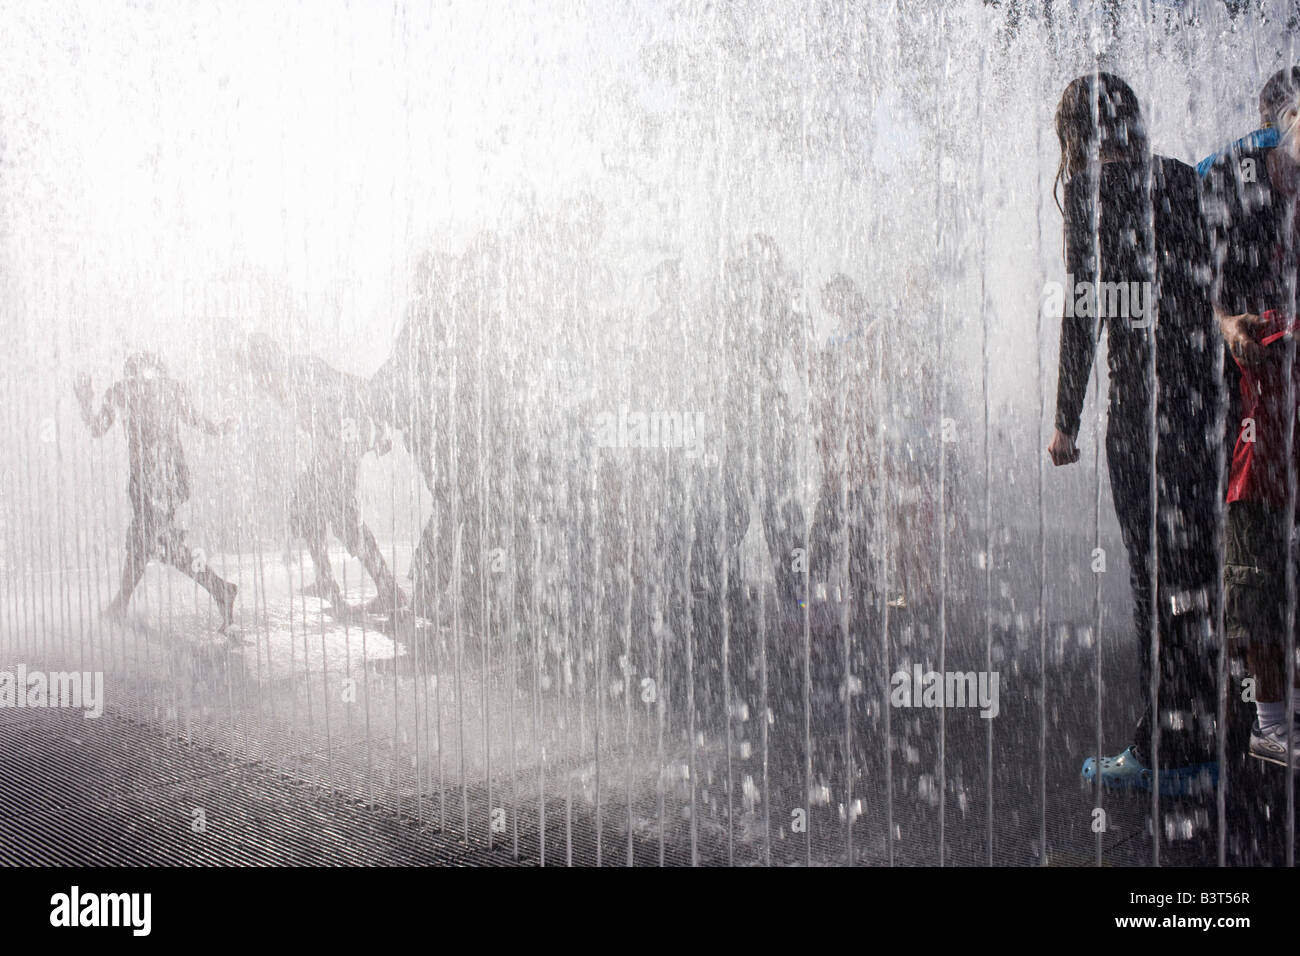 Londoners get wet in automated fountains at the Southbank during the Mayor's free Thames Festival celebration - Stock Image